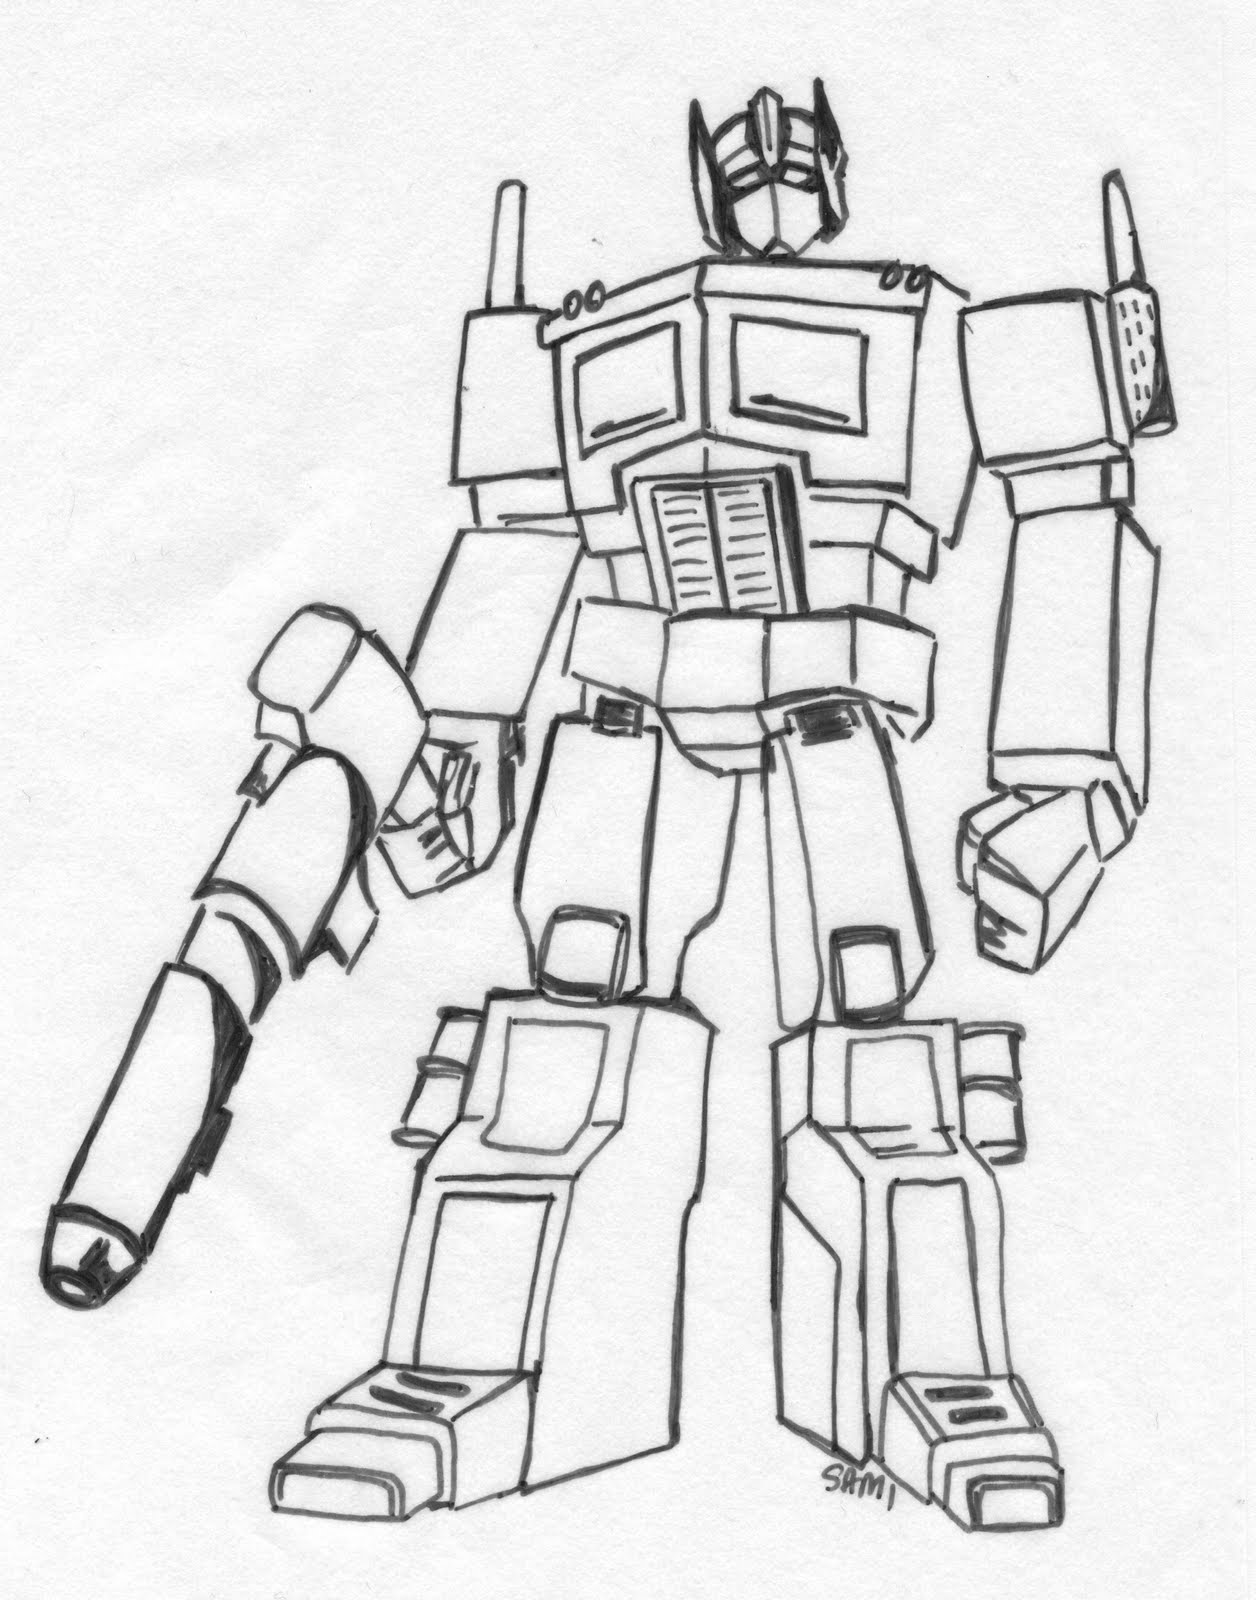 coloring optimus prime transformer optimus prime coloring book print coloring transformers optimus prime transformer coloring